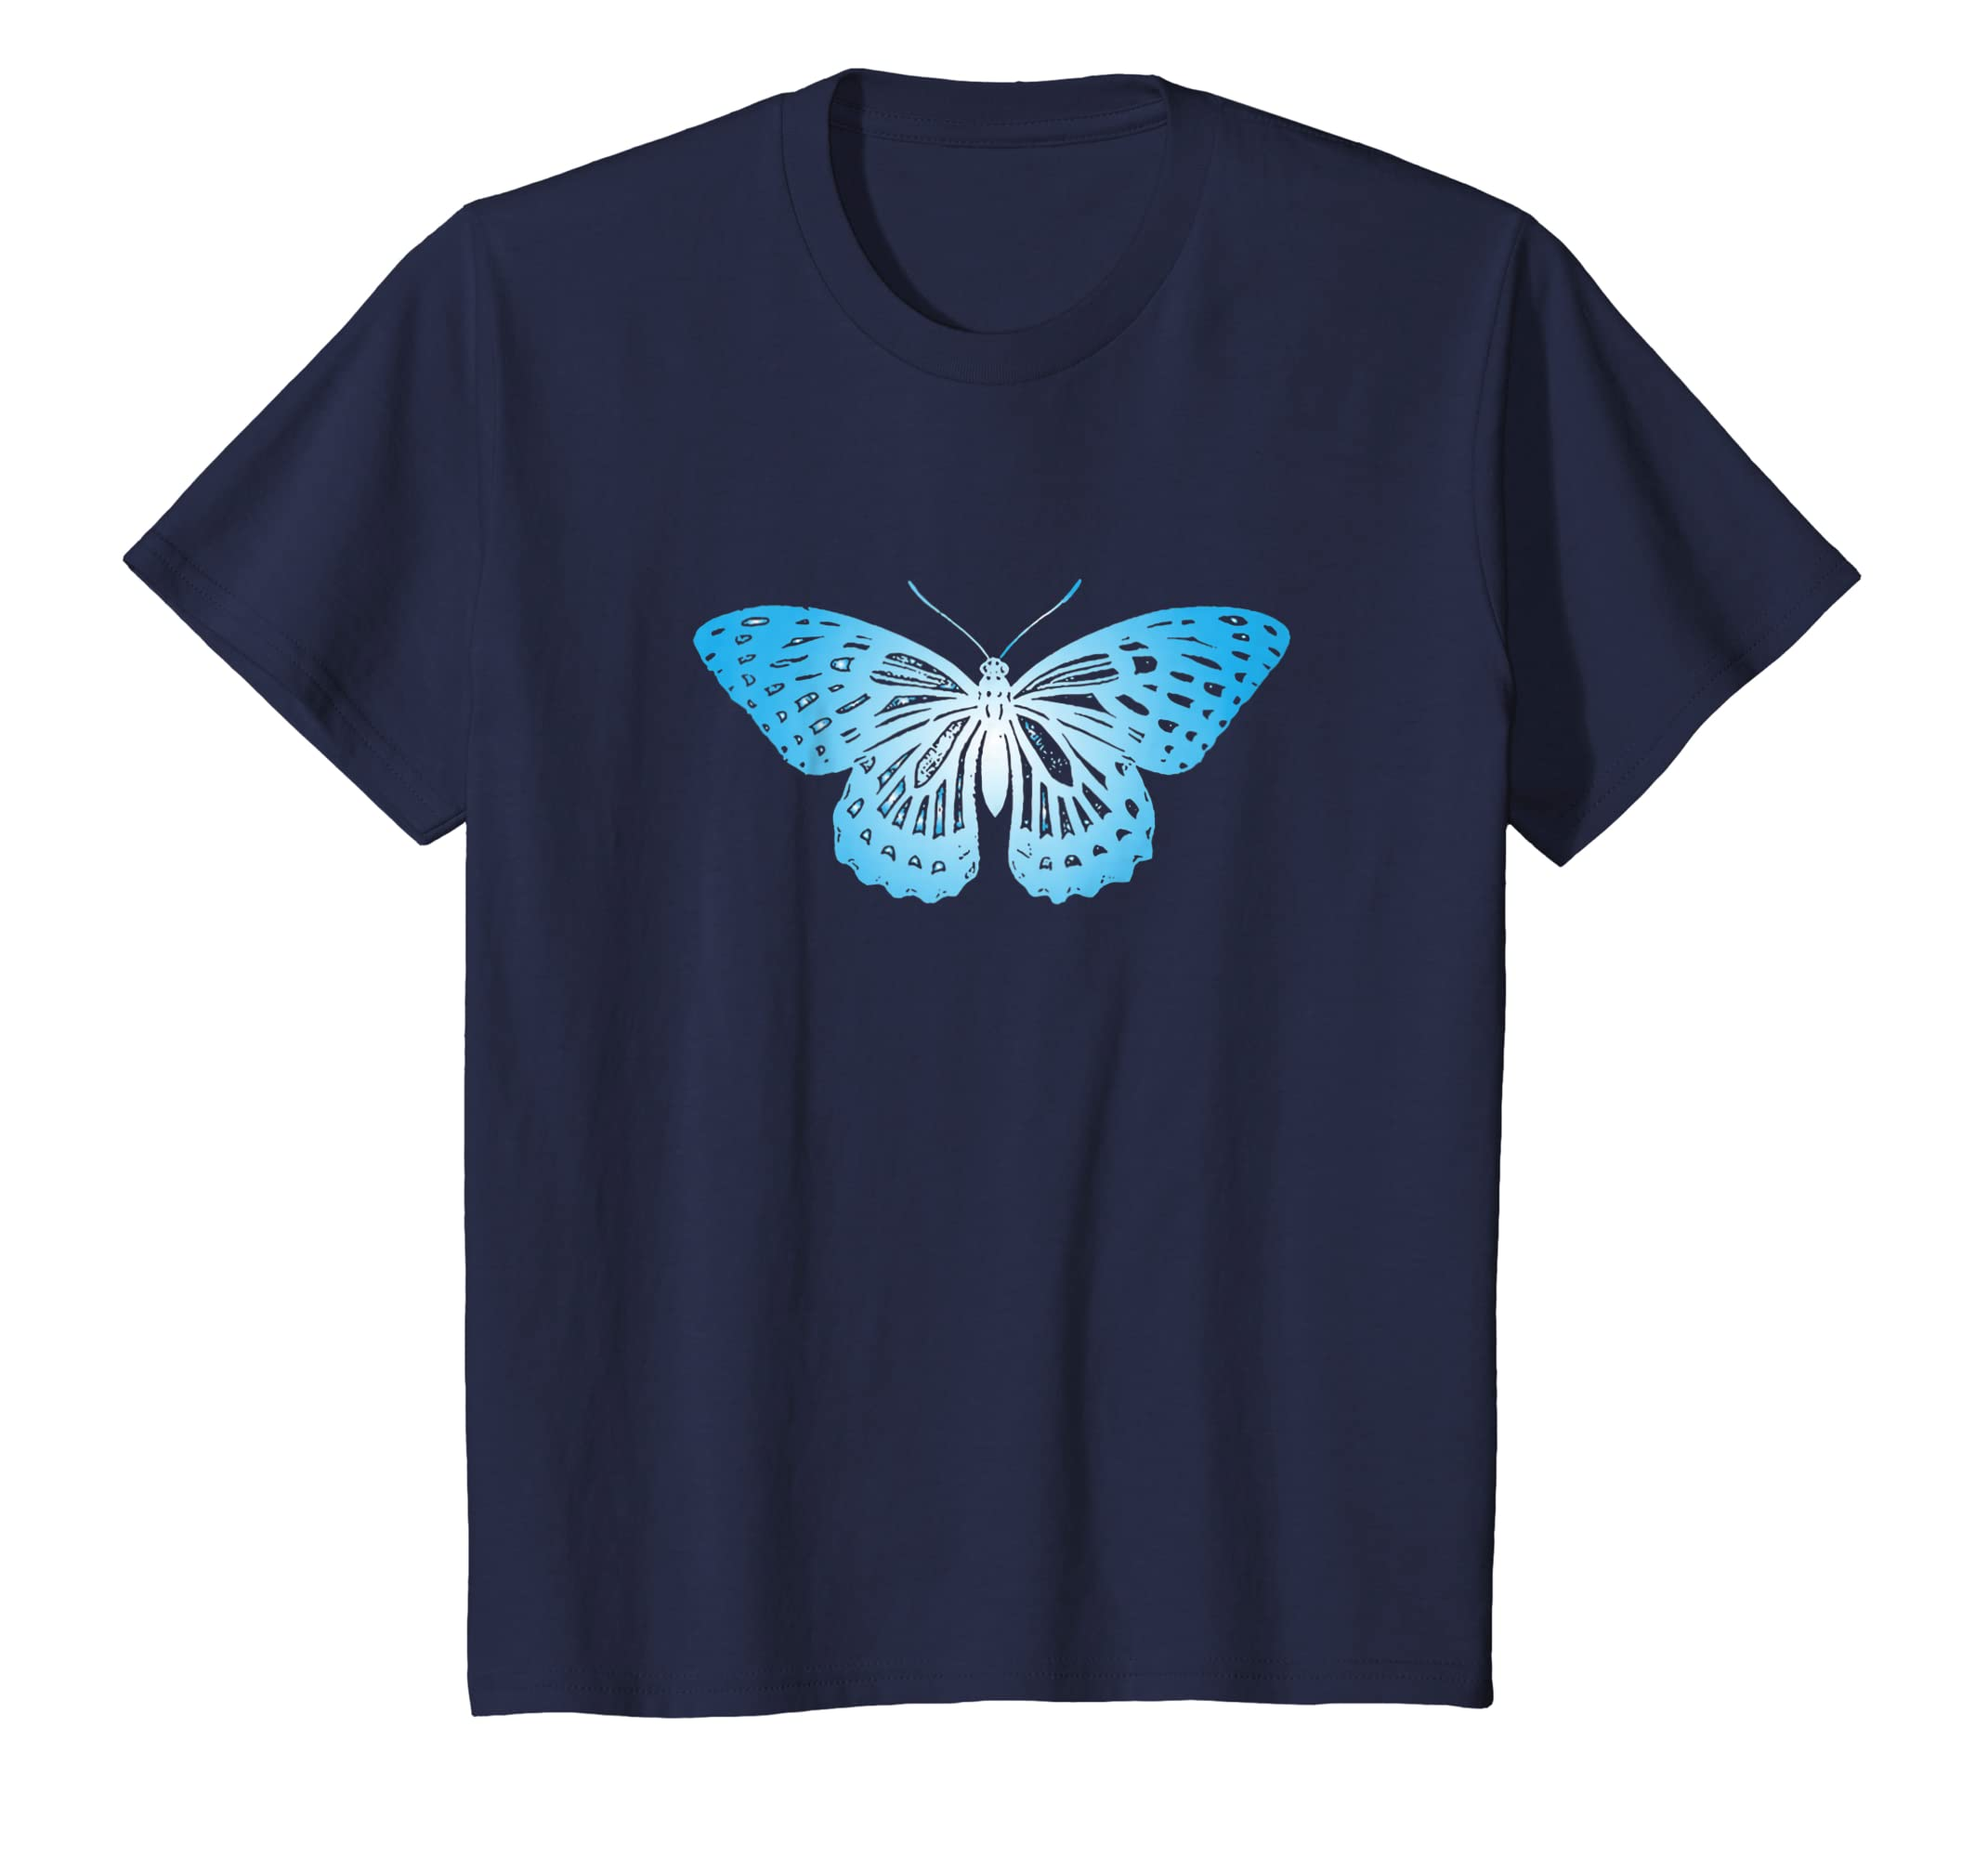 6482d5853999 Amazon.com  Blue Butterfly T-Shirt For Nature Lovers  Clothing